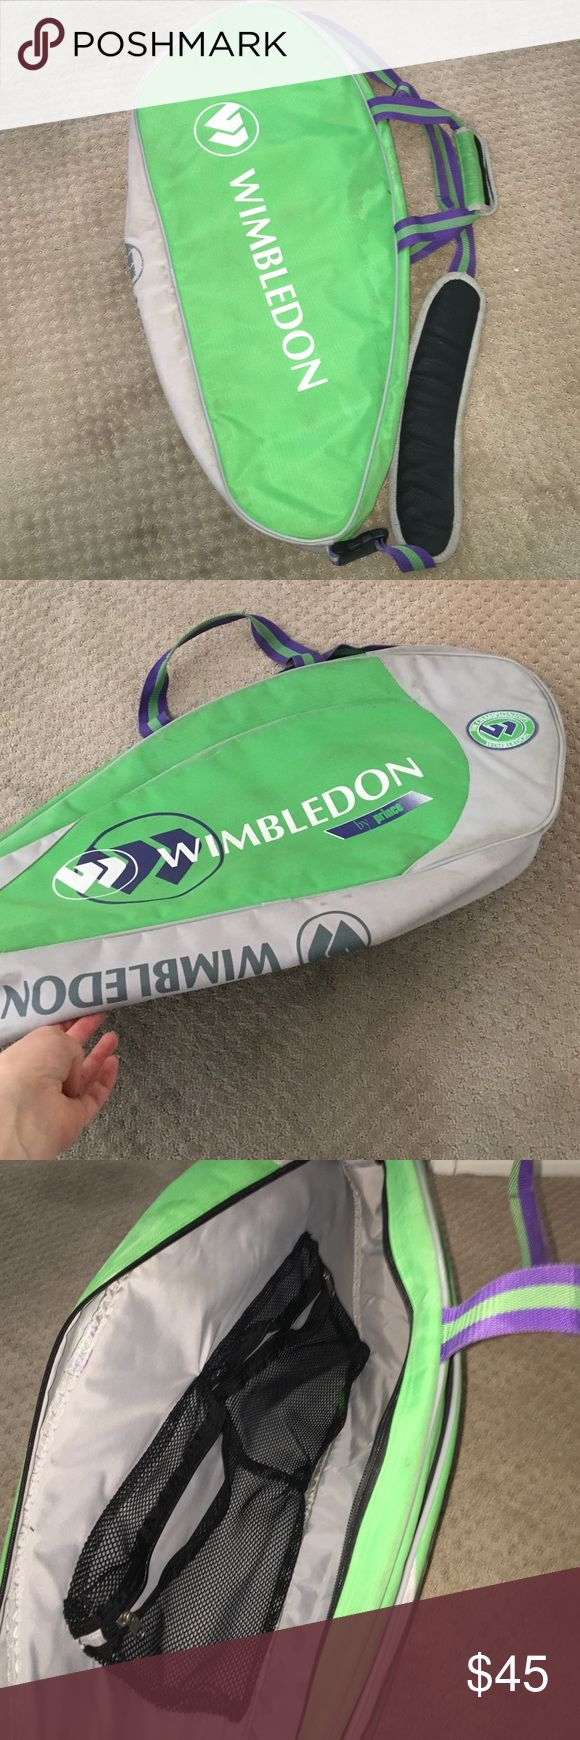 Wimbledon tennis bag! Bought at Wimbledon authentic Wimbledon by prince tennis bag! Lime green, purple and grey! A little dirty but in great condition! Very rare tennis bag! Bags